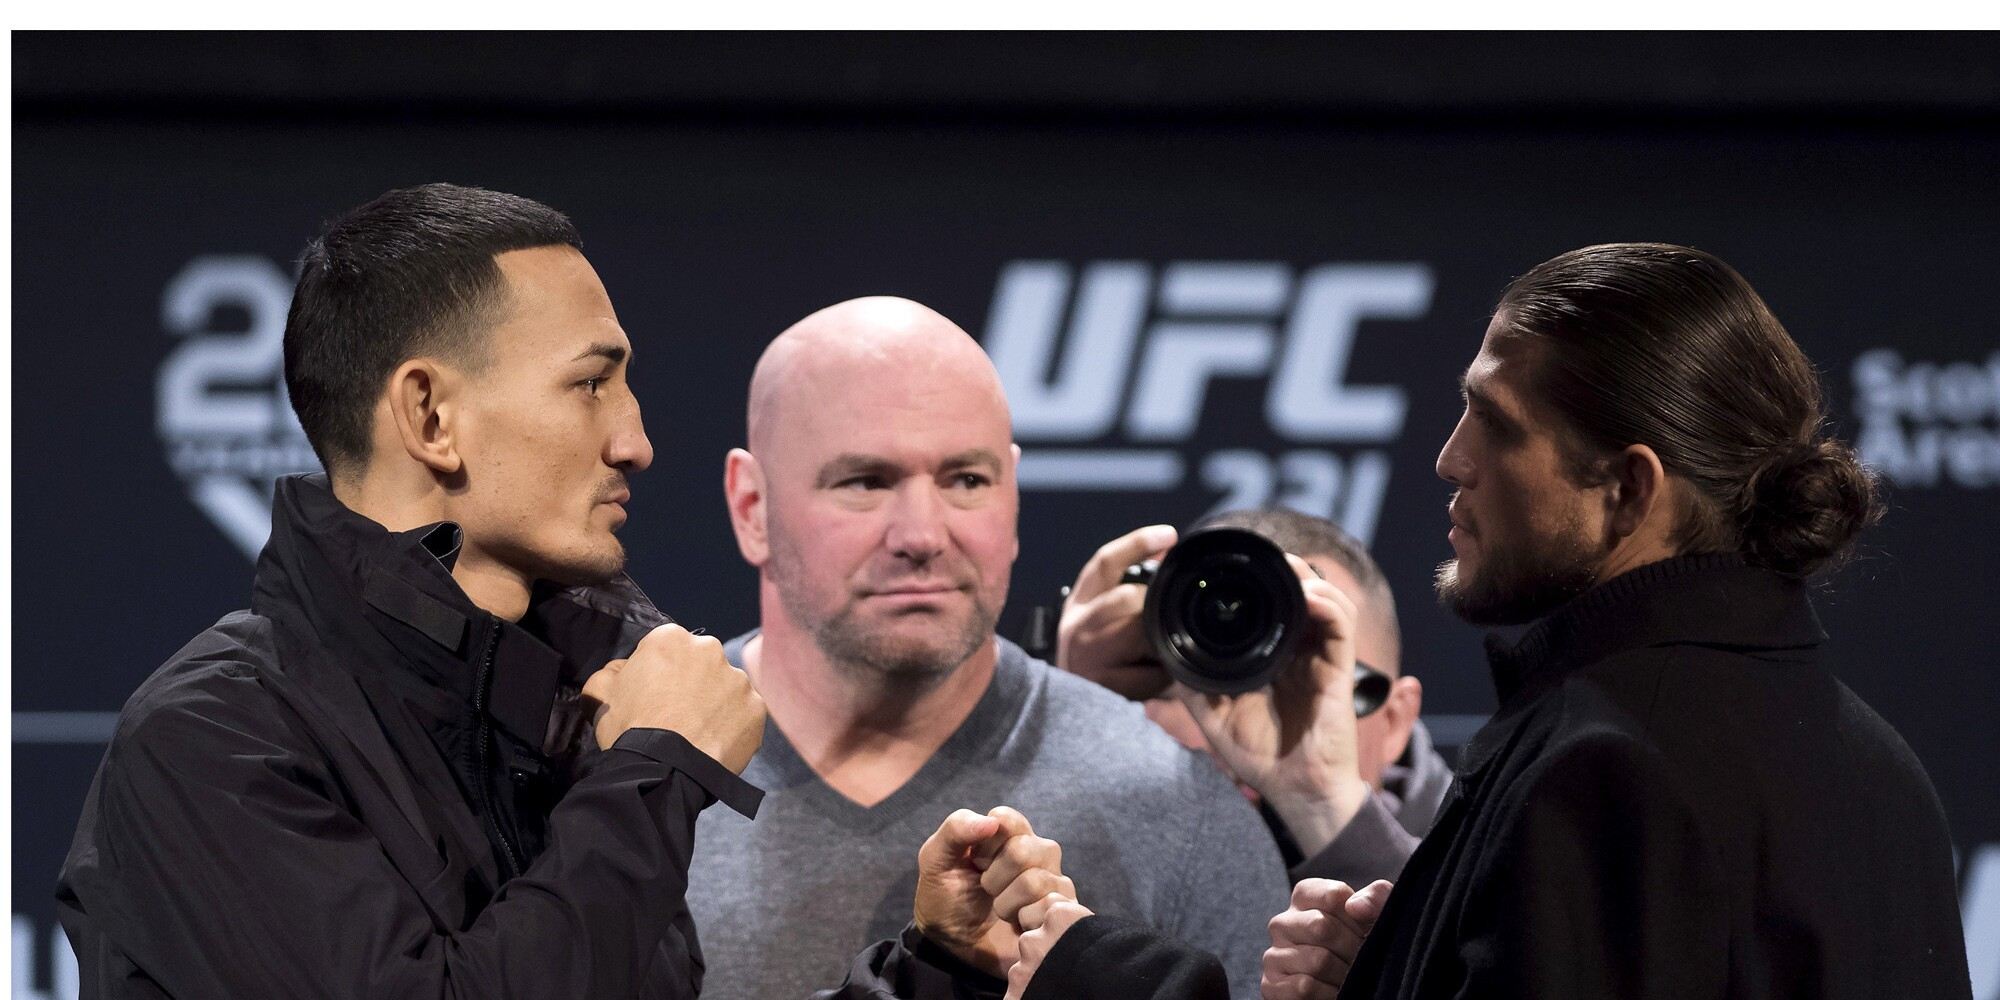 UFC 231 live coverage: Round-by-round, fight-by-fight results for Holloway vs. Ortega